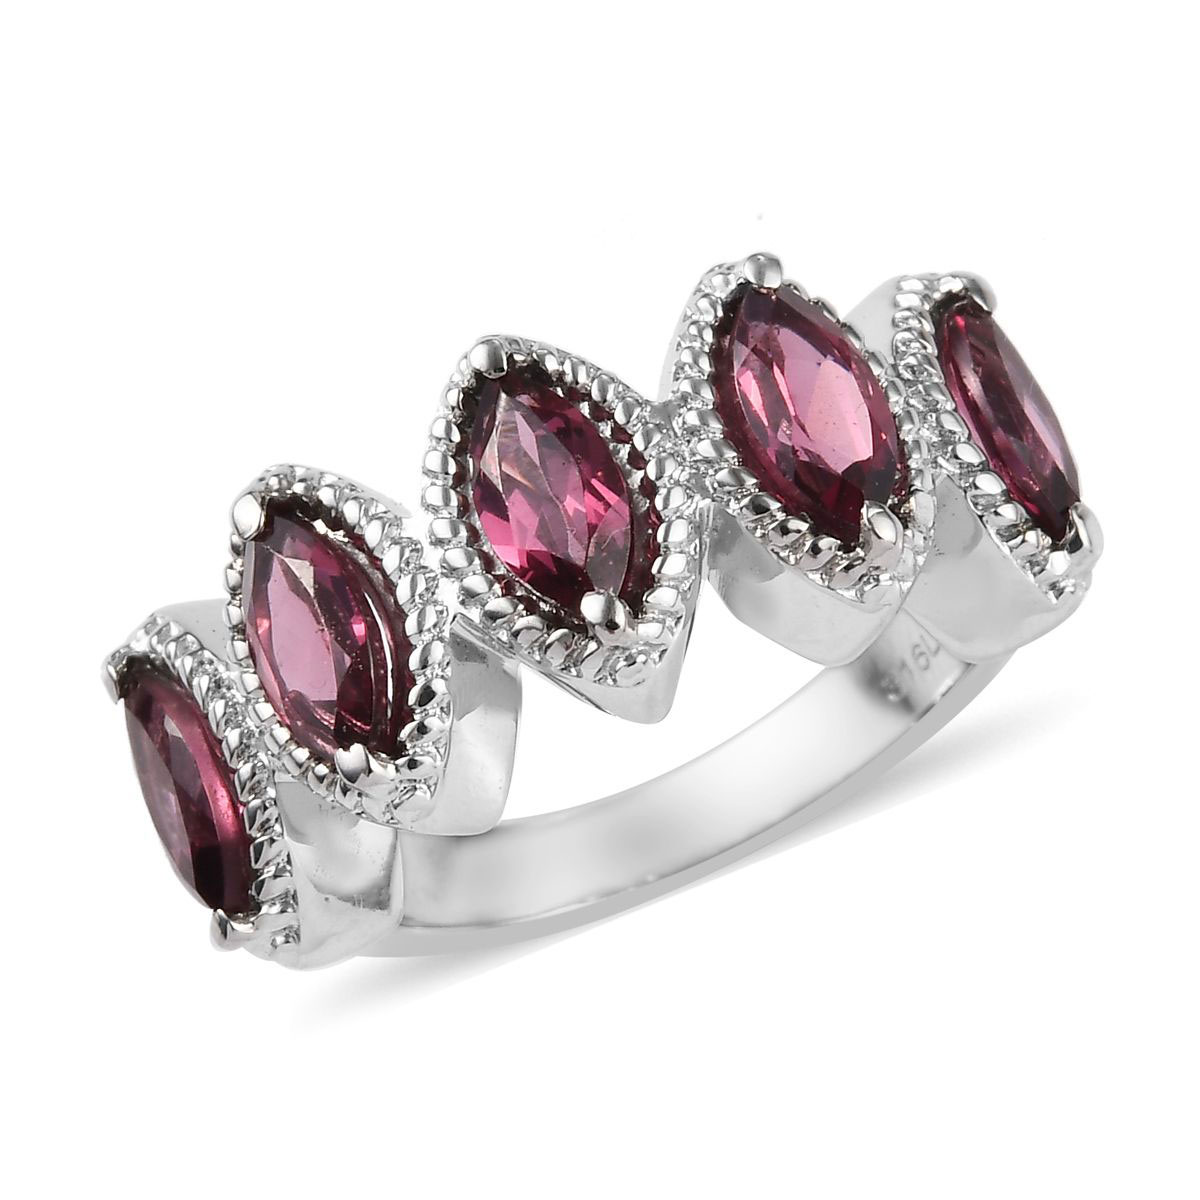 Shop LC Delivering Joy Statement Ring Stainless Steel Jewelry for Women Size 8